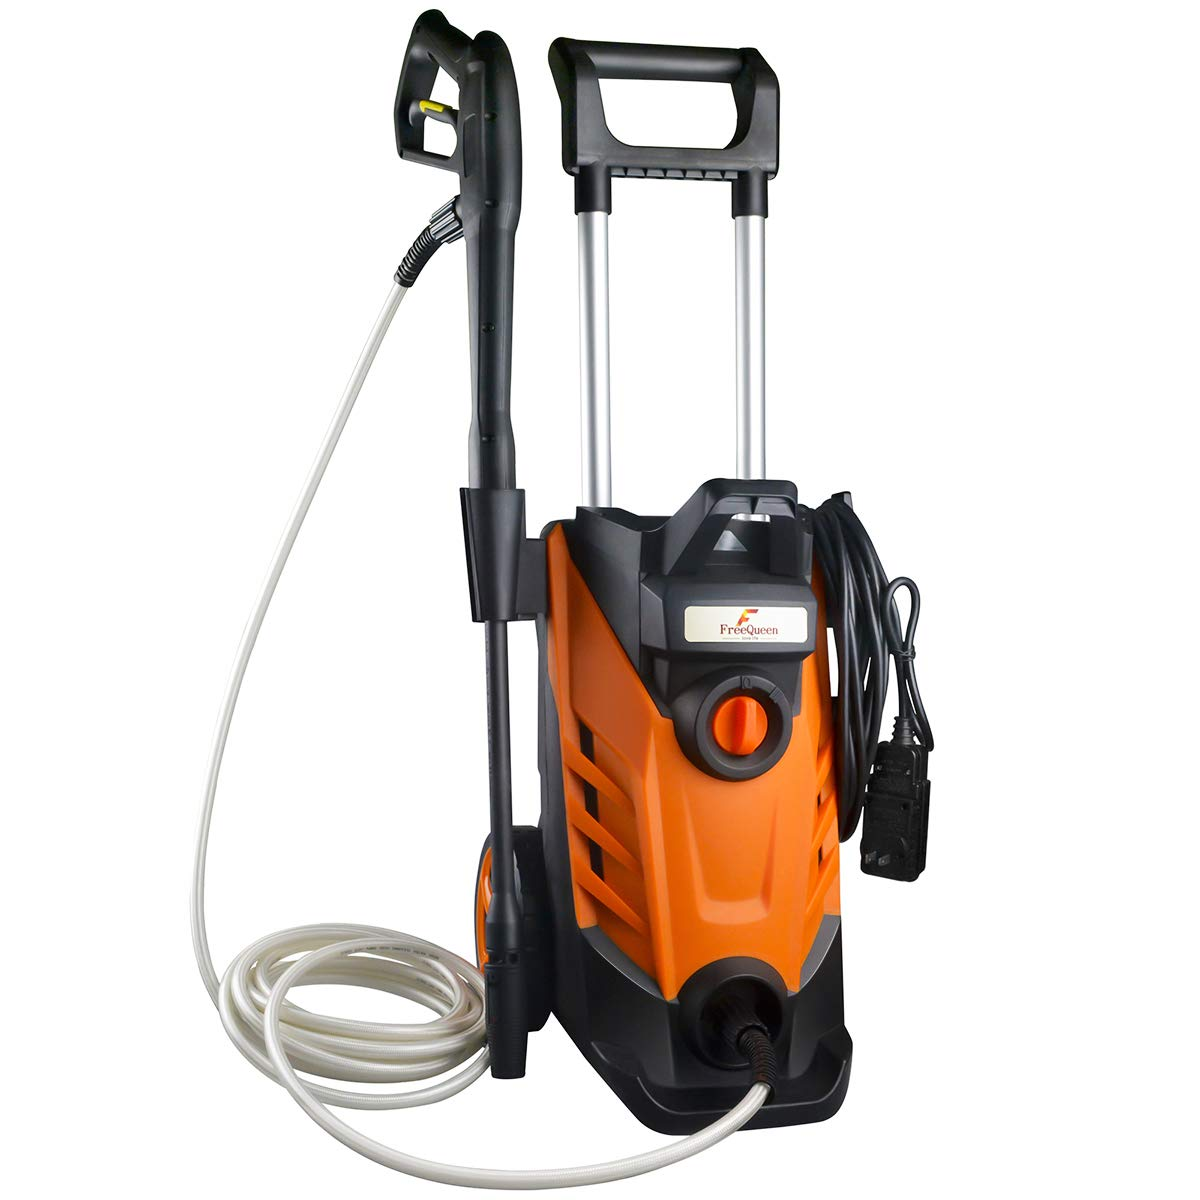 2180 PSI 2.4 GPM 15-Amp Electric Pressure Washer 1800W Power Cleaner Machine with High Pressure Hose and Sprayer